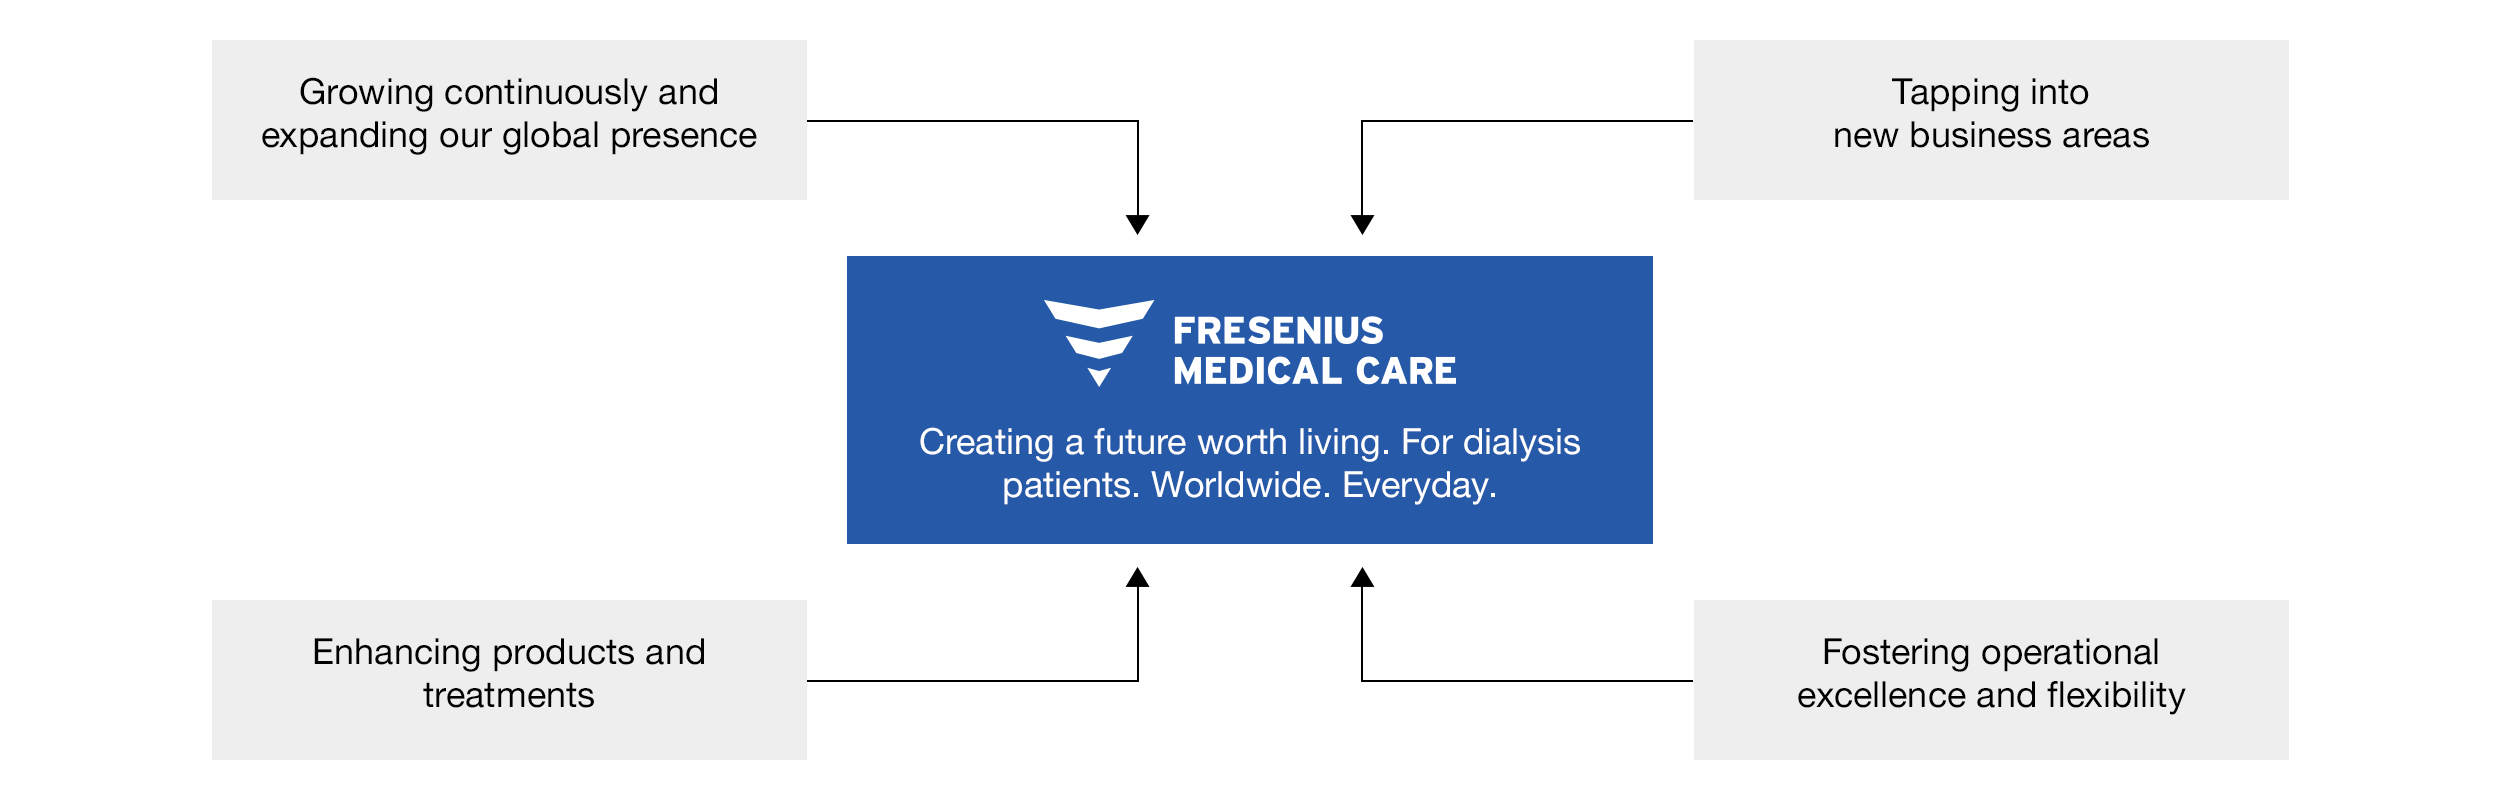 Fresenius Medical Care's Corporate Strategy